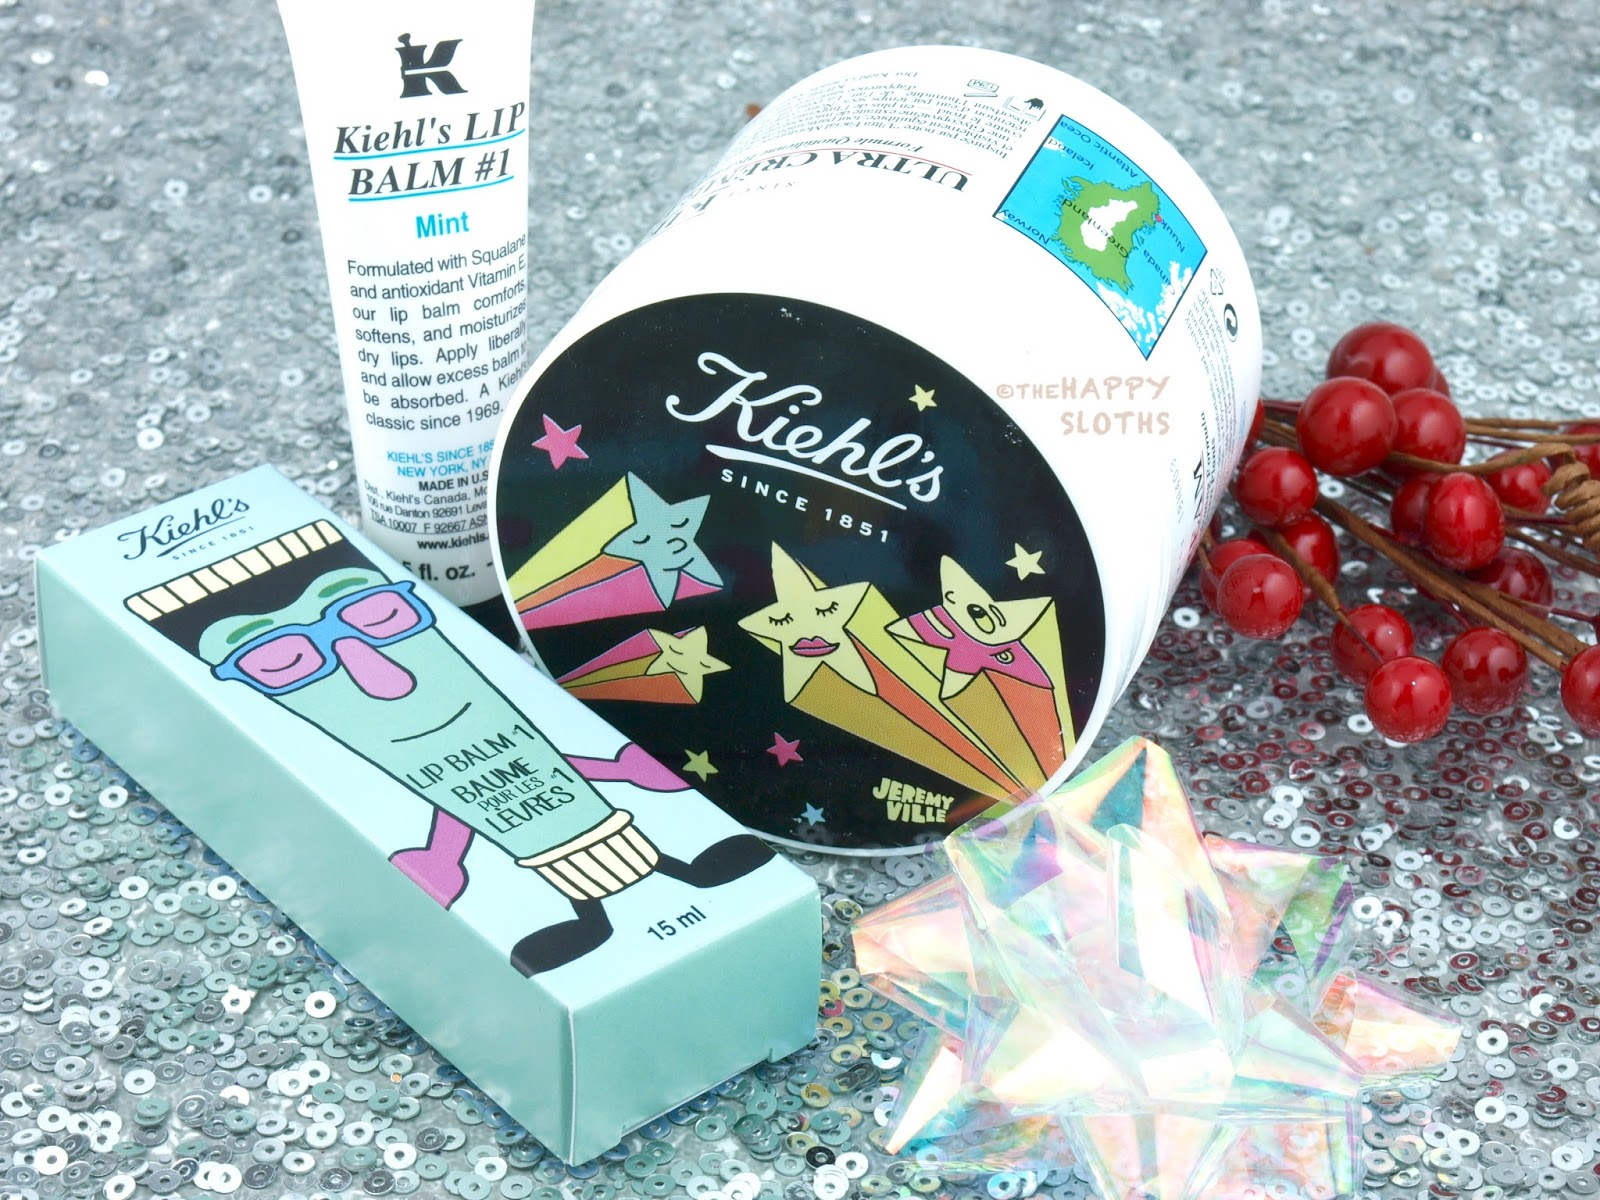 Kiehl's Jeremyville Ultra Facial Cream and Lip Balm